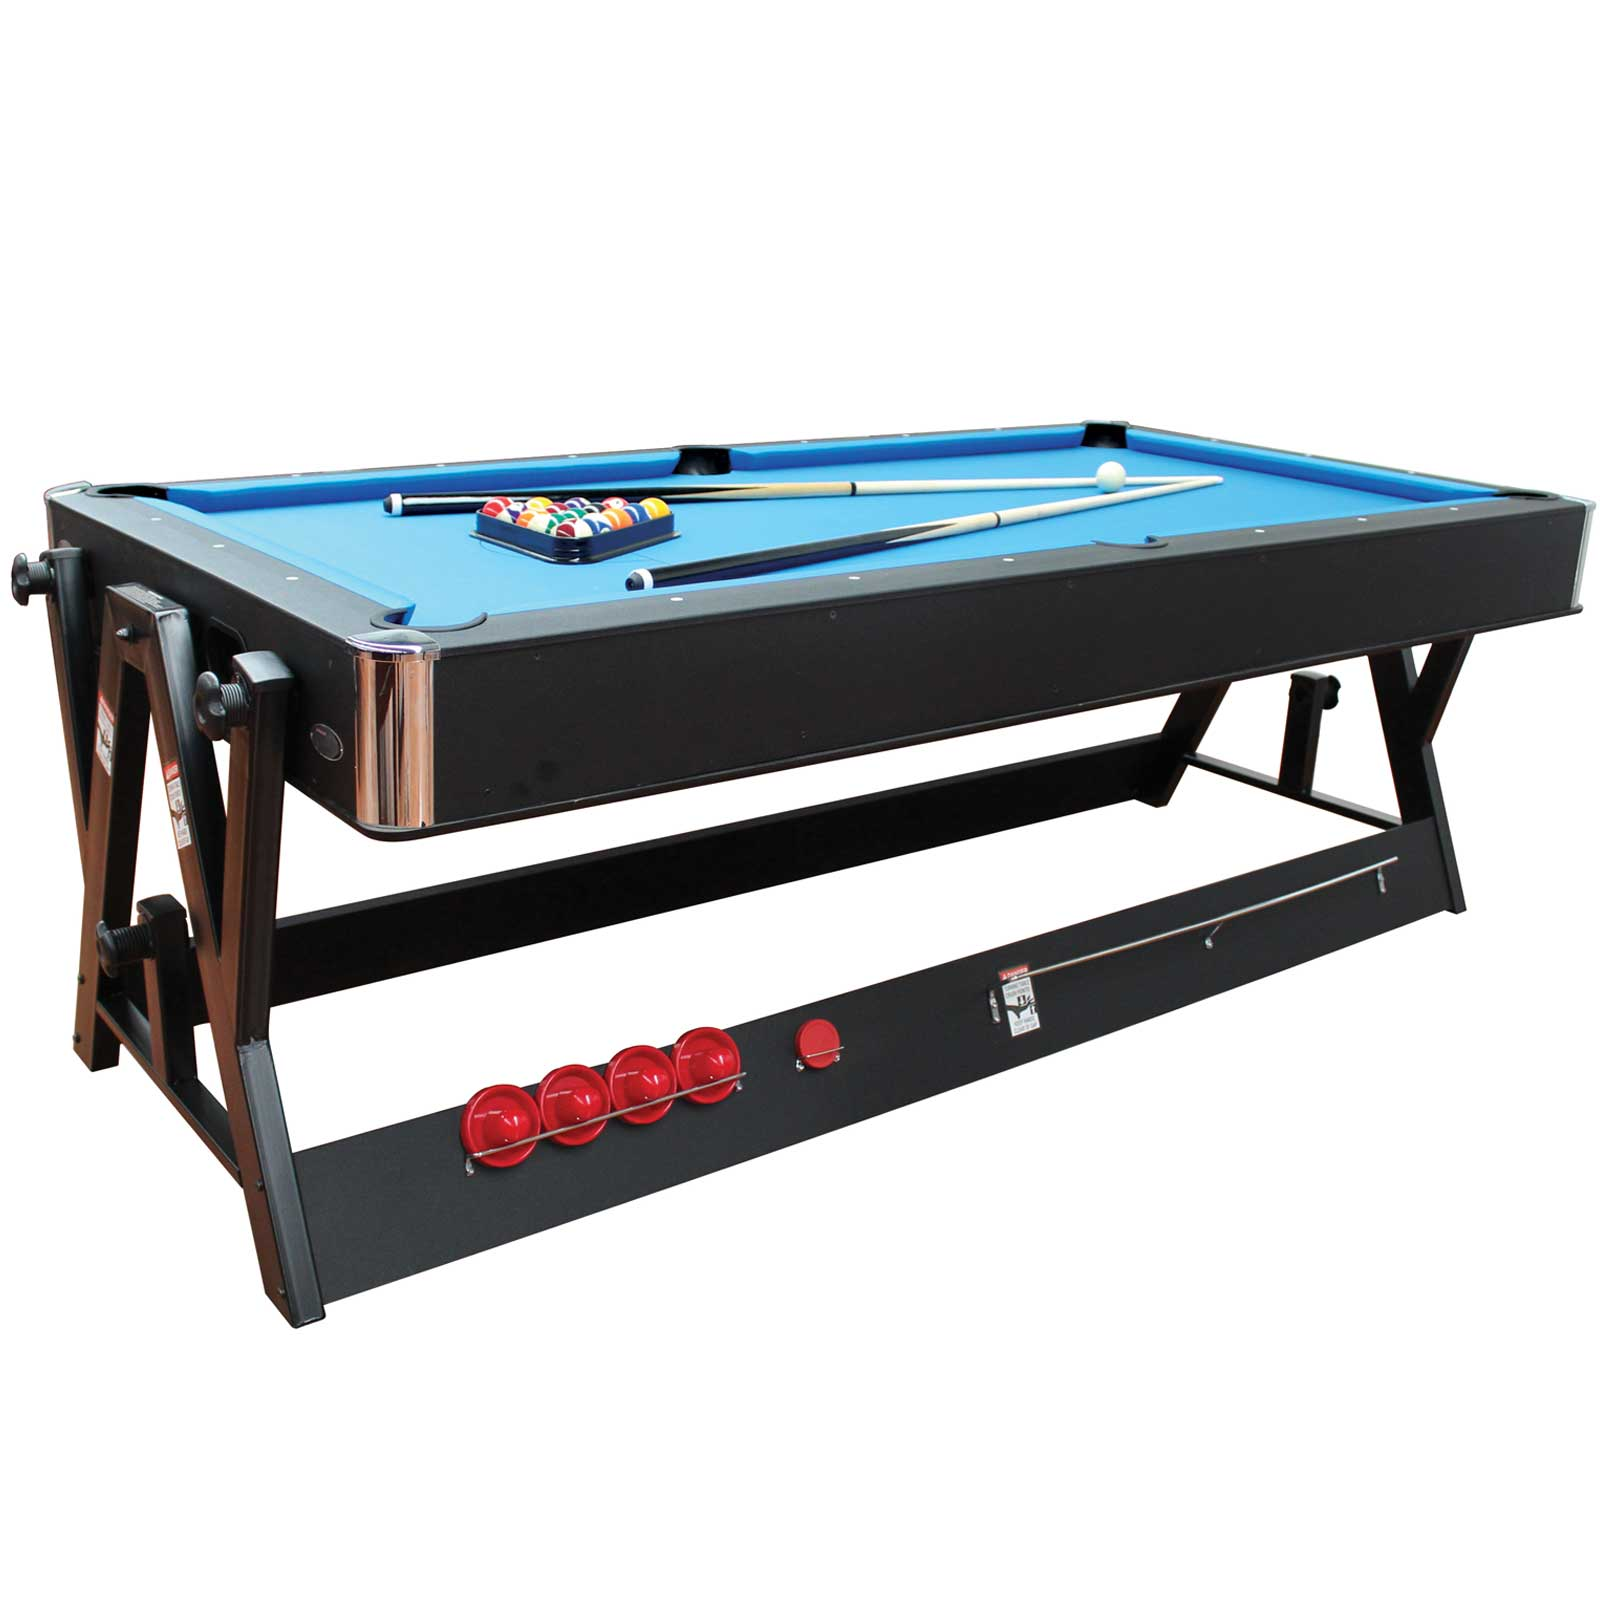 What are the benefits of pool tables?